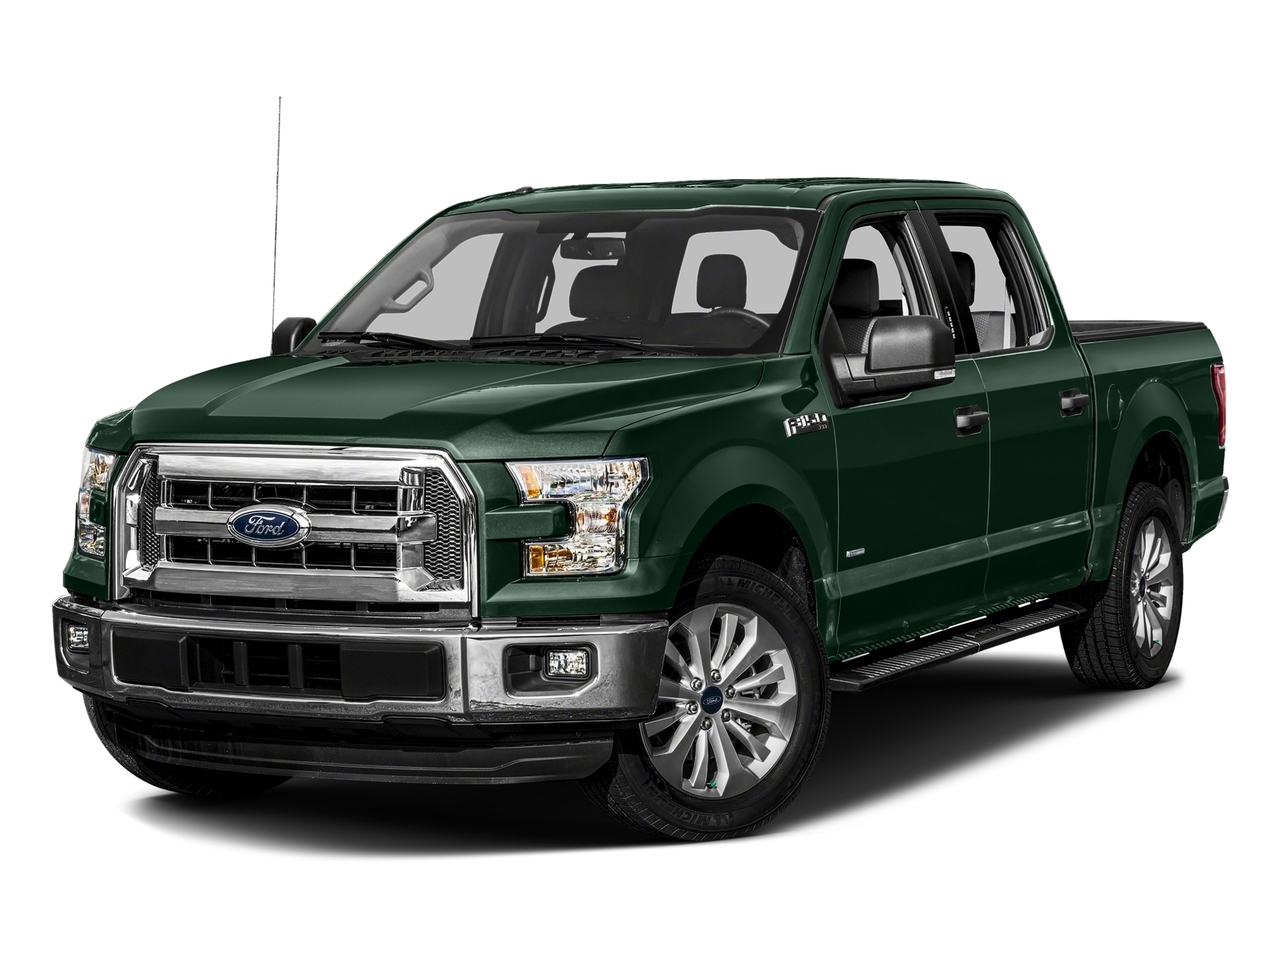 2016 Ford F-150 XLT Crew Cab Pickup Slide